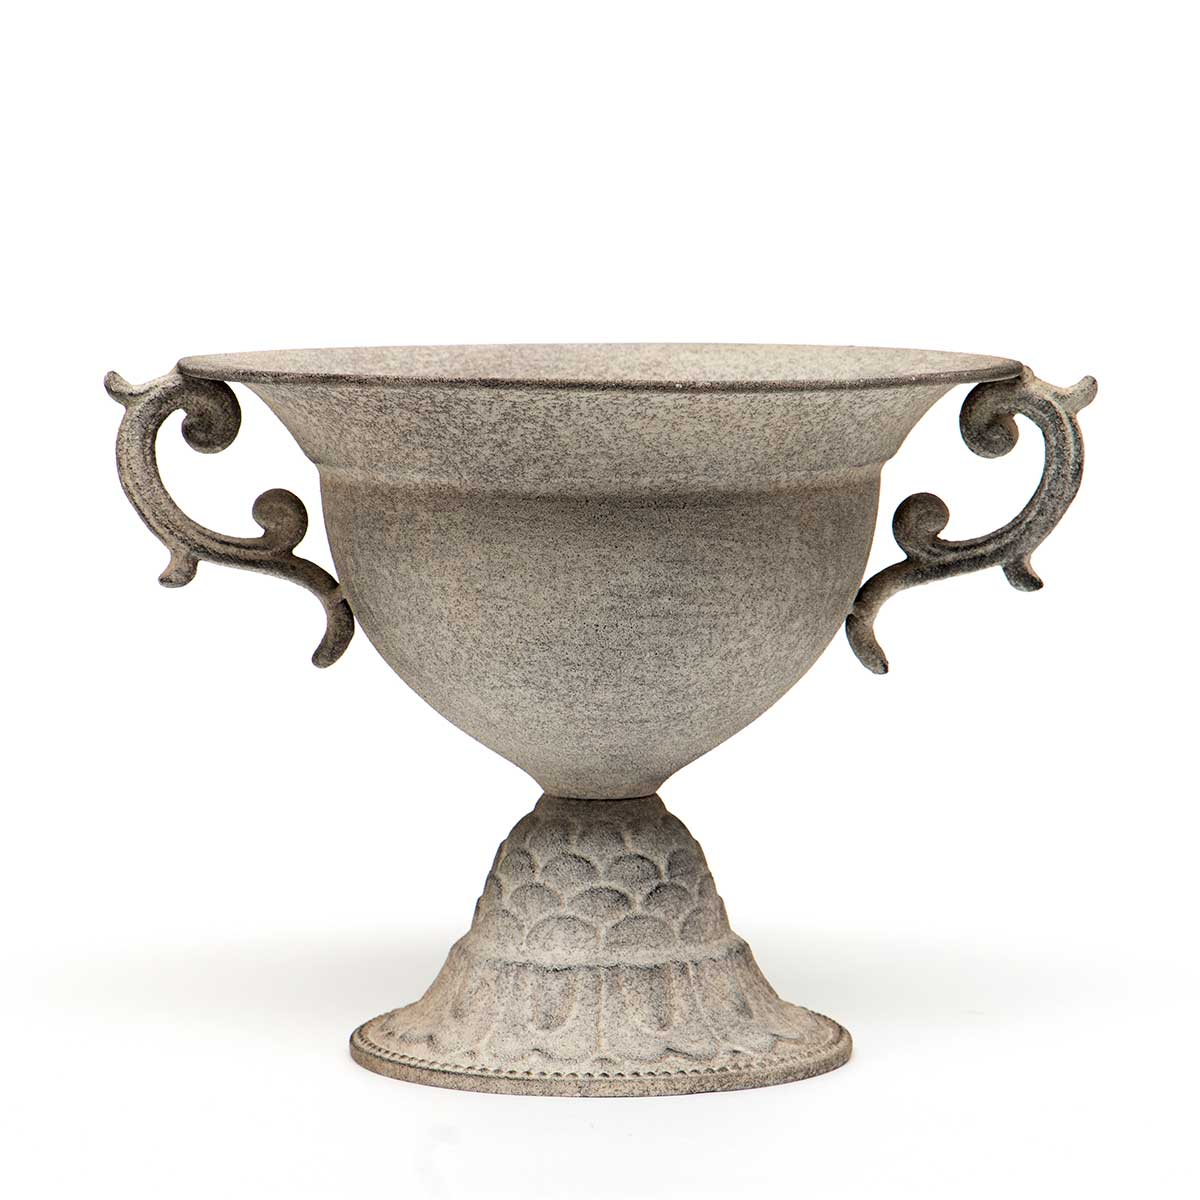 "GRANITE FINISH METAL BOWL URN WITH HANDLES 12.25""x10.5""x8.75"""